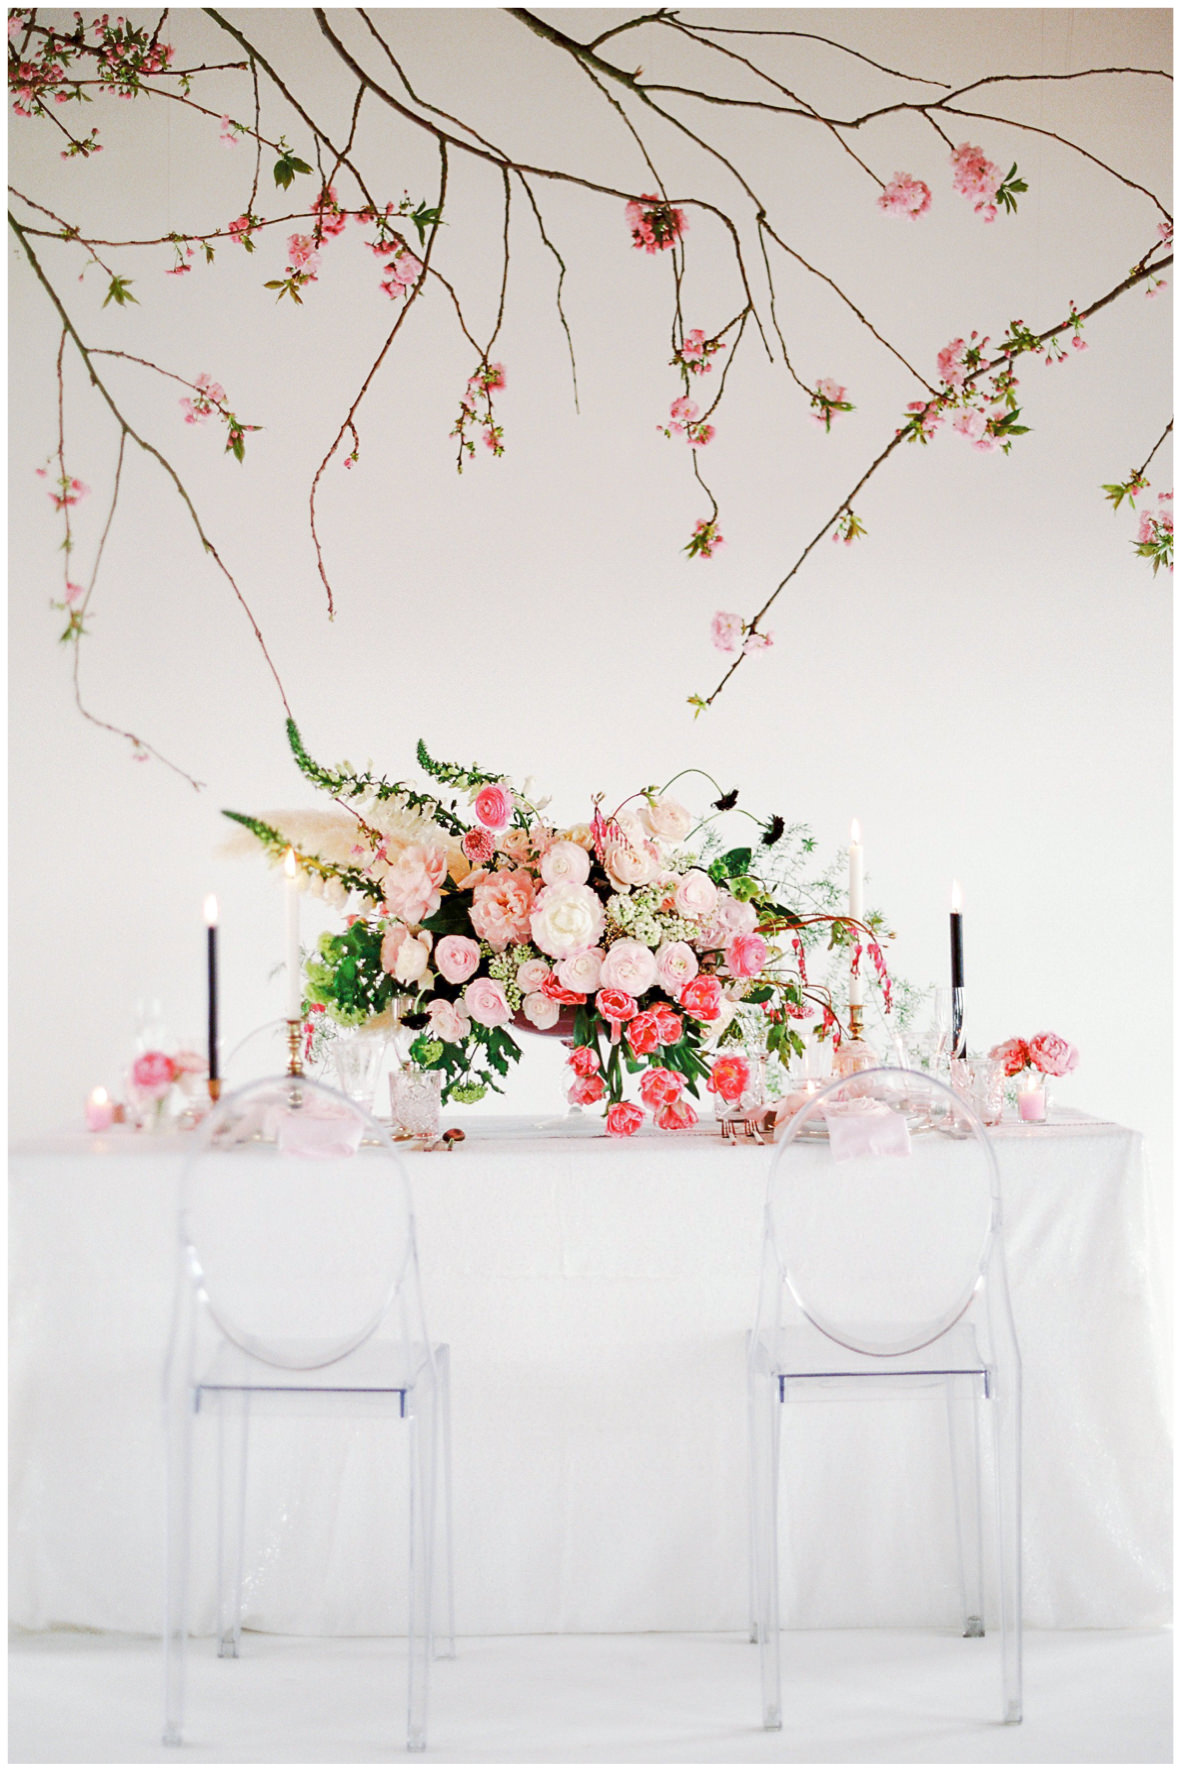 Lucy Davenport Photography, Loft Studios, Rebecca K Events, tablescape, soft pink, wedding breakfast, ghost chairs, suspended florals